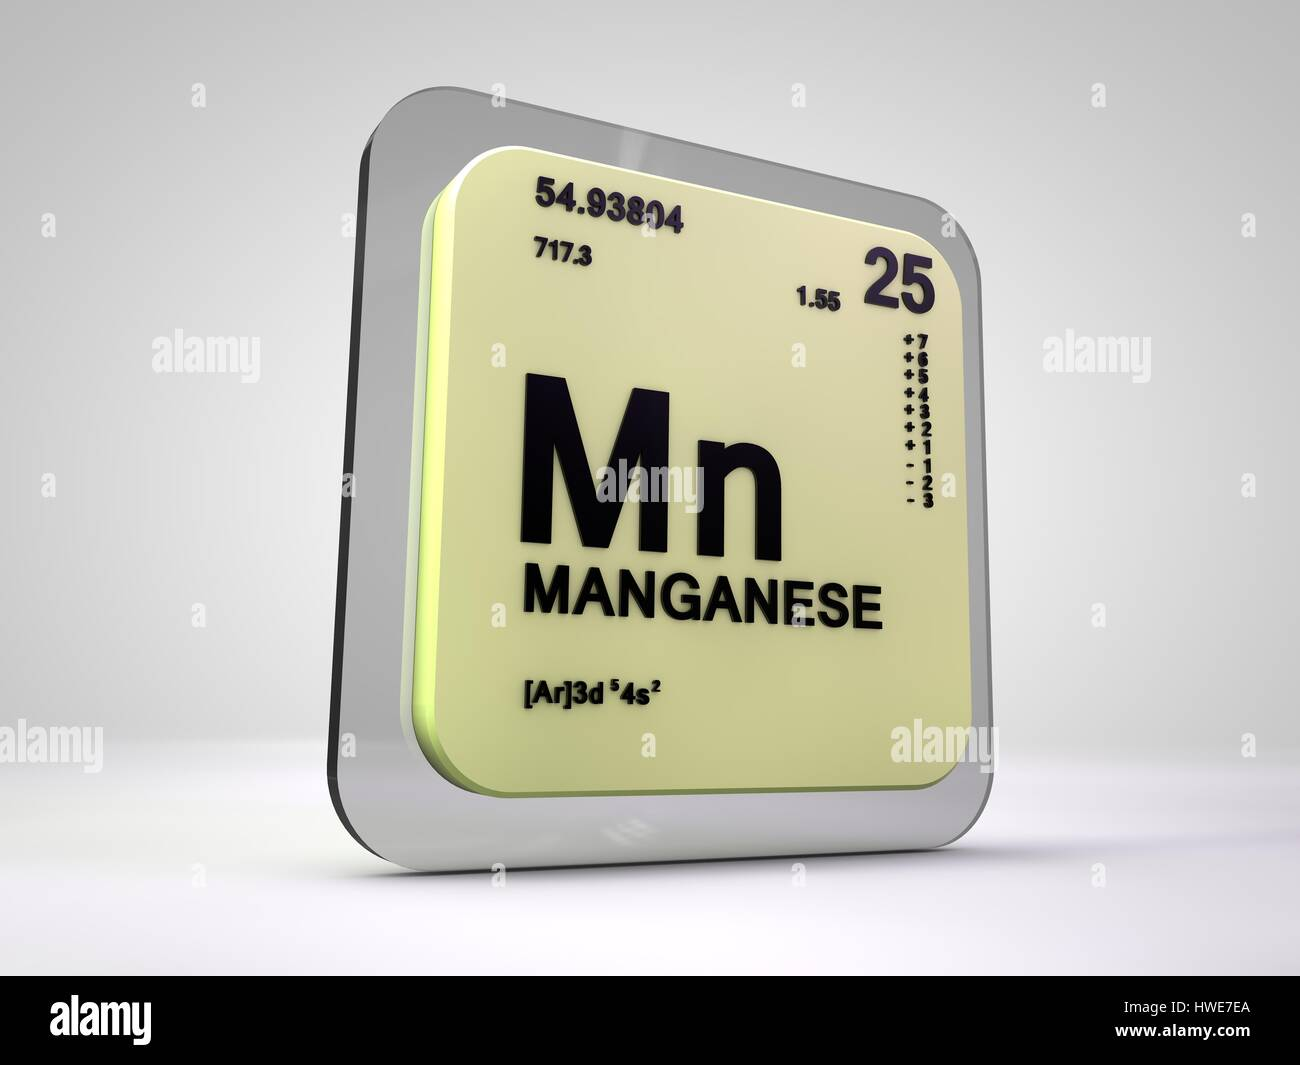 Manganese mn chemical element periodic table 3d render stock manganese mn chemical element periodic table 3d render gamestrikefo Images